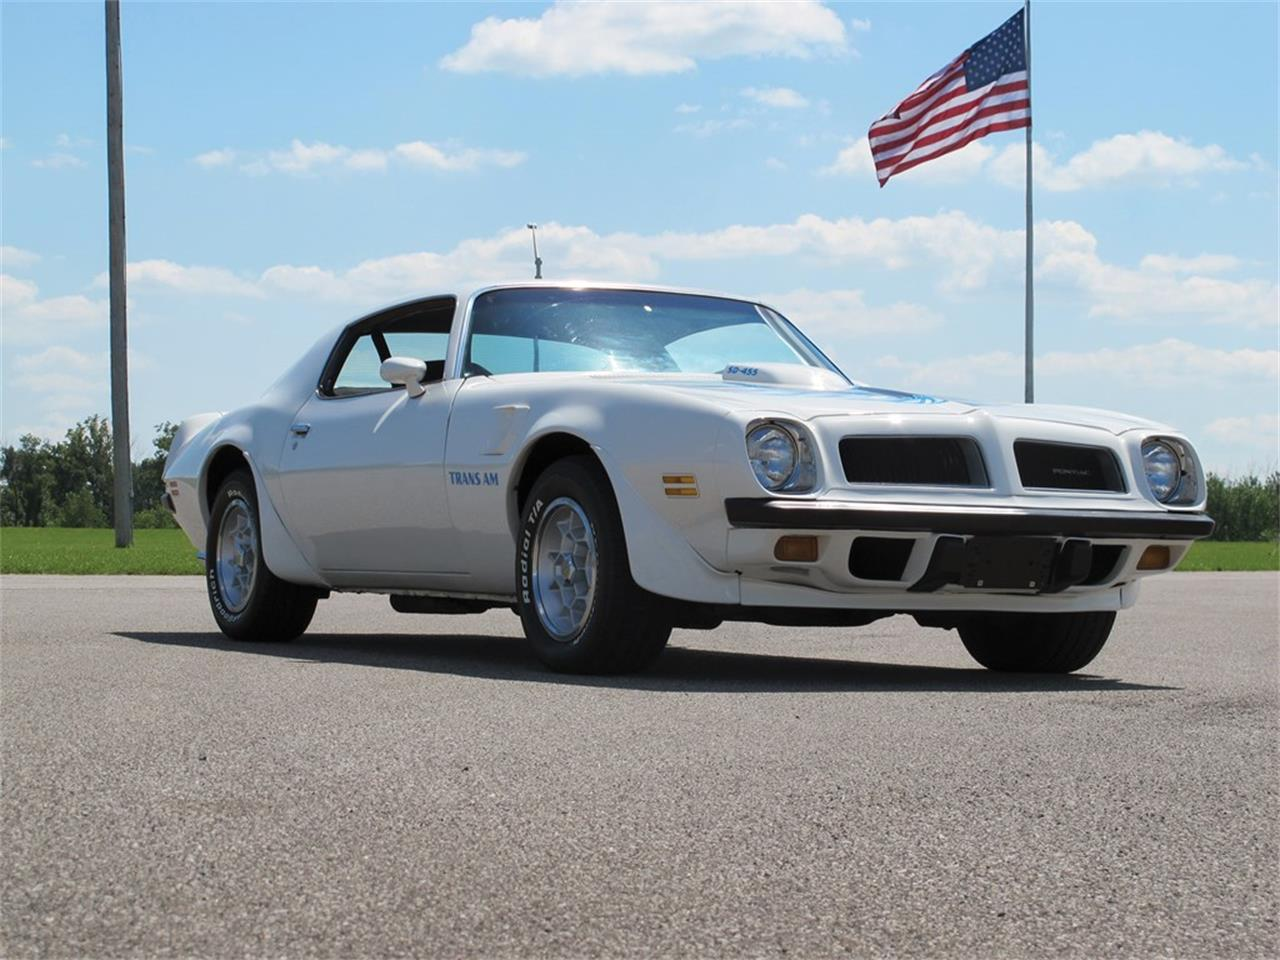 1974 Pontiac Firebird Trans Am for sale in Fort Lauderdale, FL